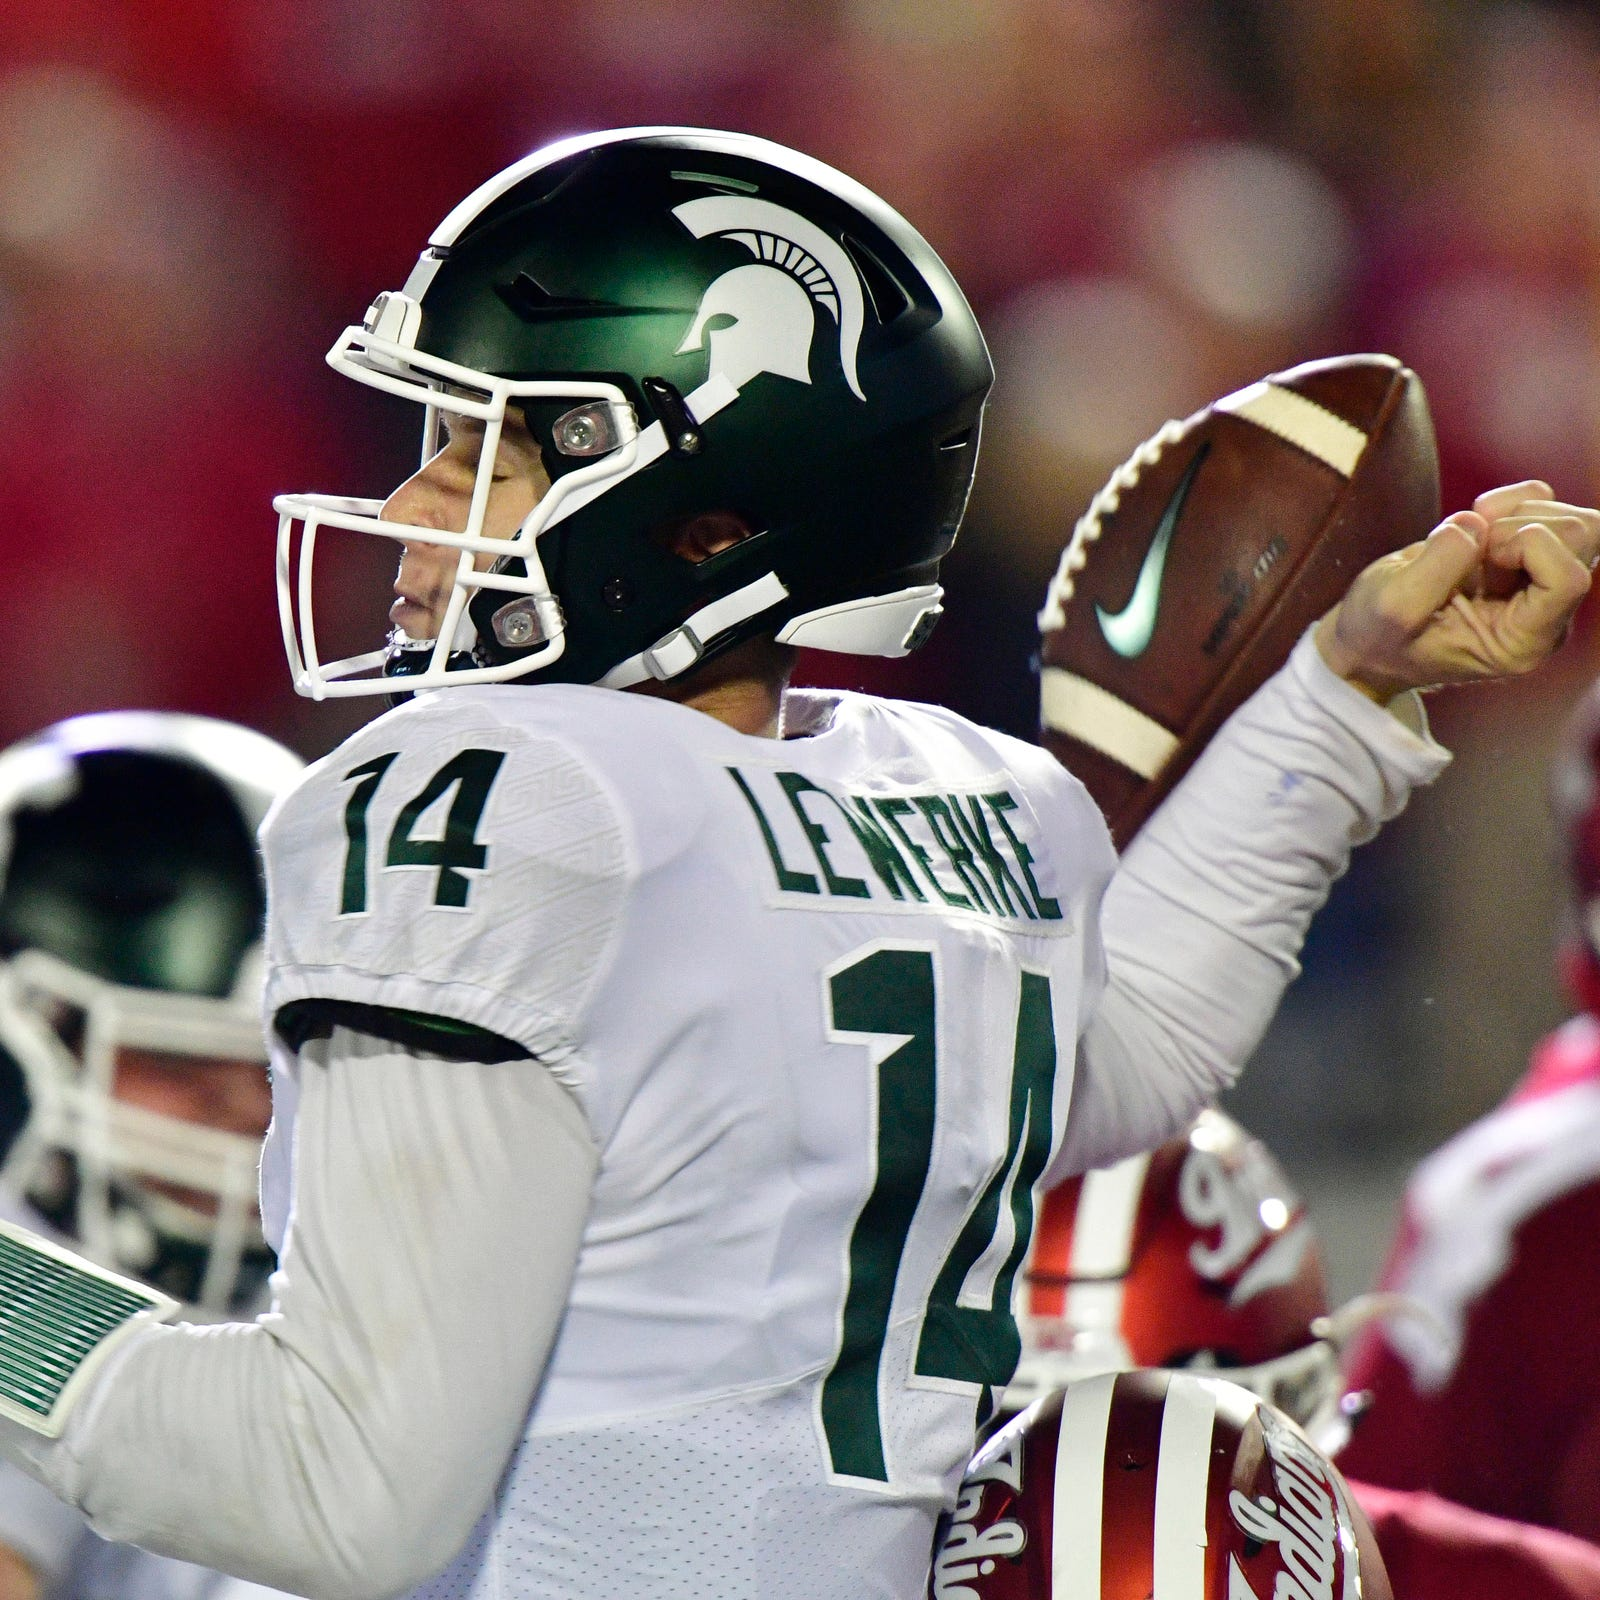 Michigan State football 3 questions: Can MSU still make the playoff?